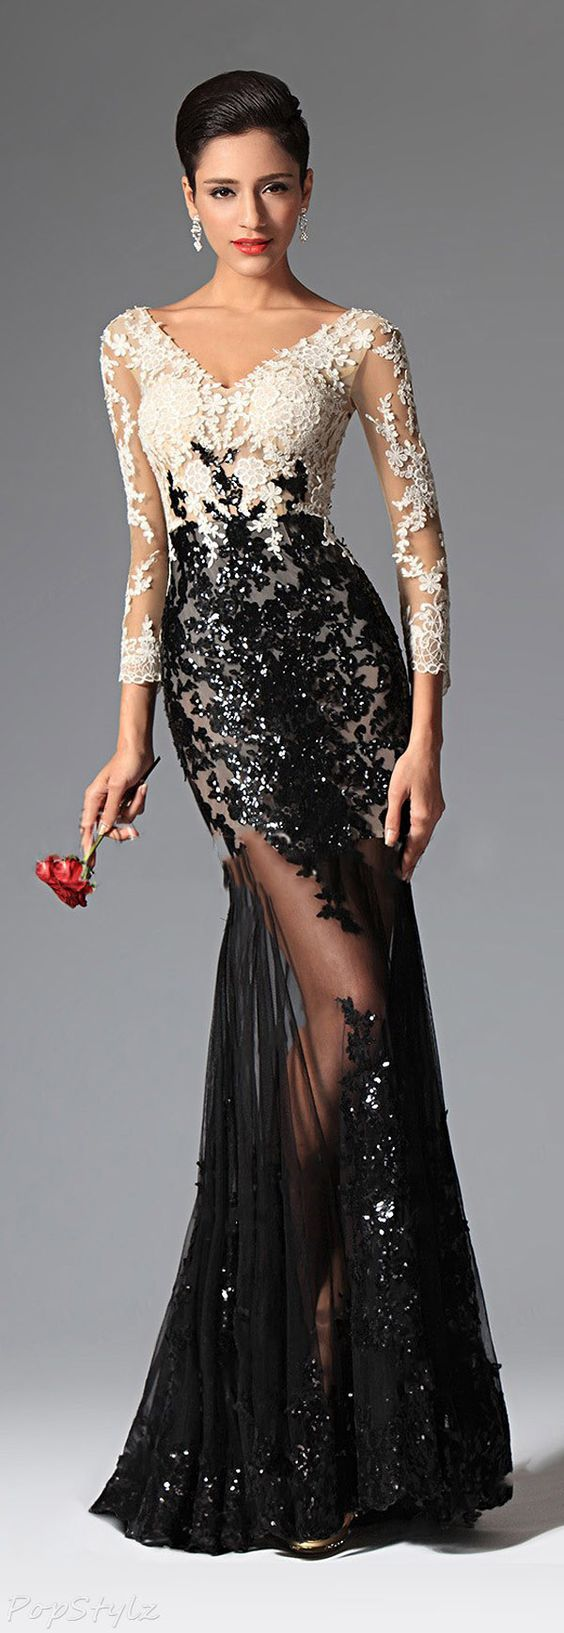 Thu dress pinterest tulle lace ol and dressing gown